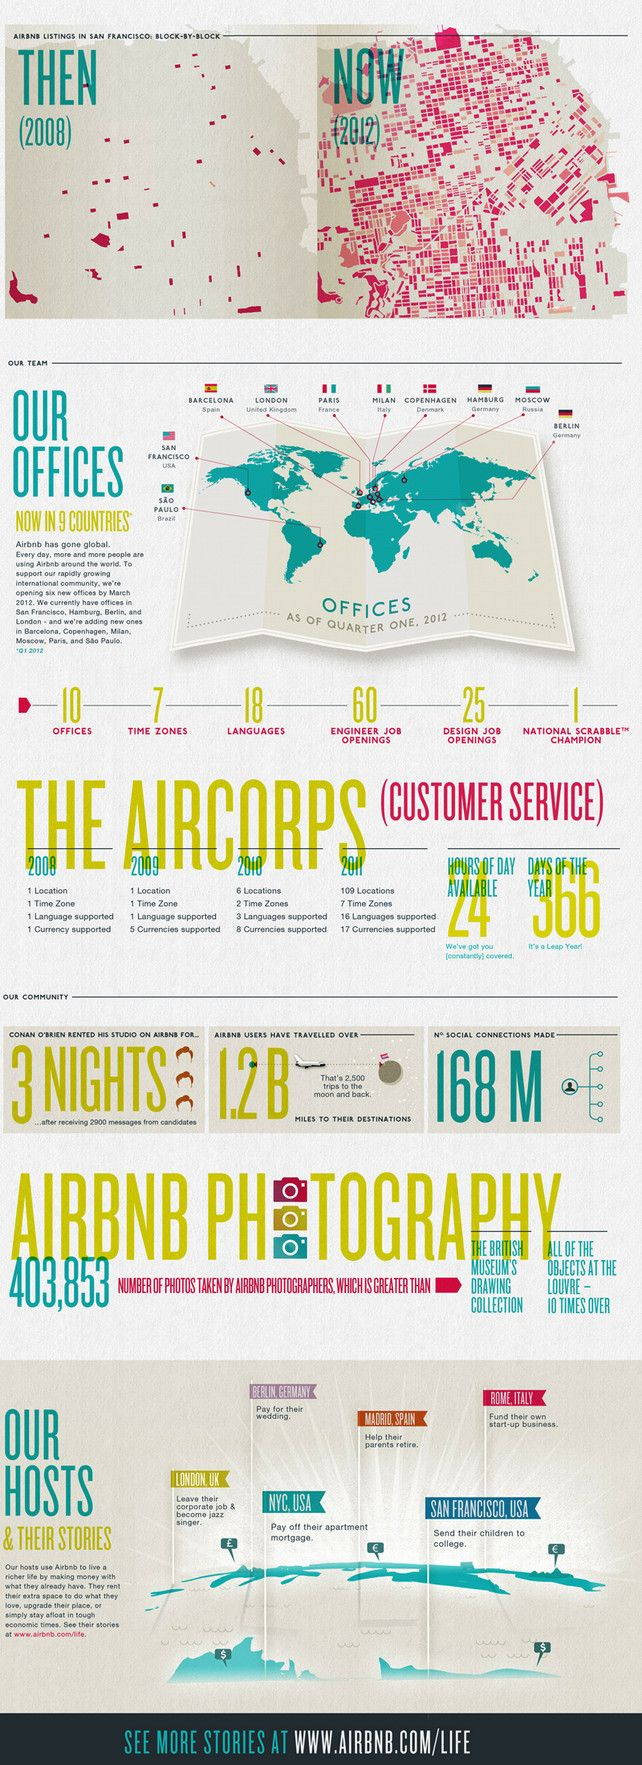 With Infographic, Airbnb Turns Boring Facts Into Masterful Marketing